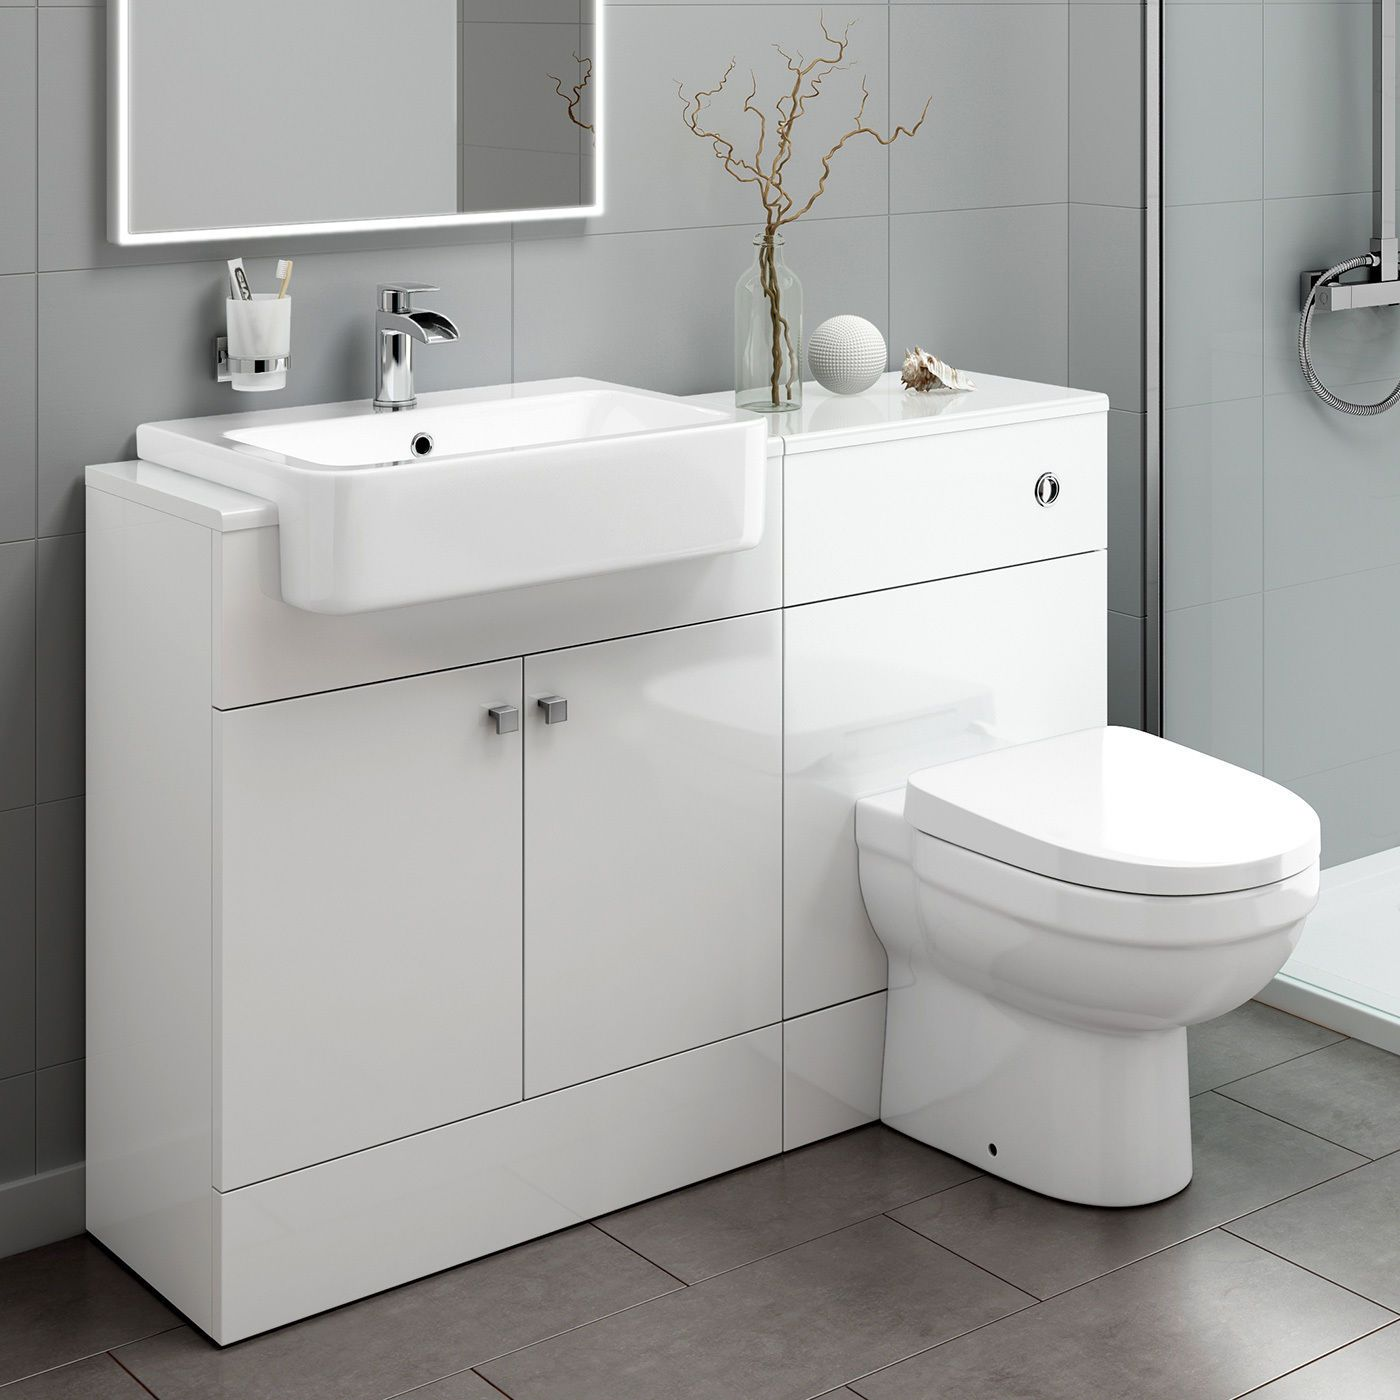 bathroom sinks and vanity units 1160mm white bathroom vanity unit sink and toilet 22371